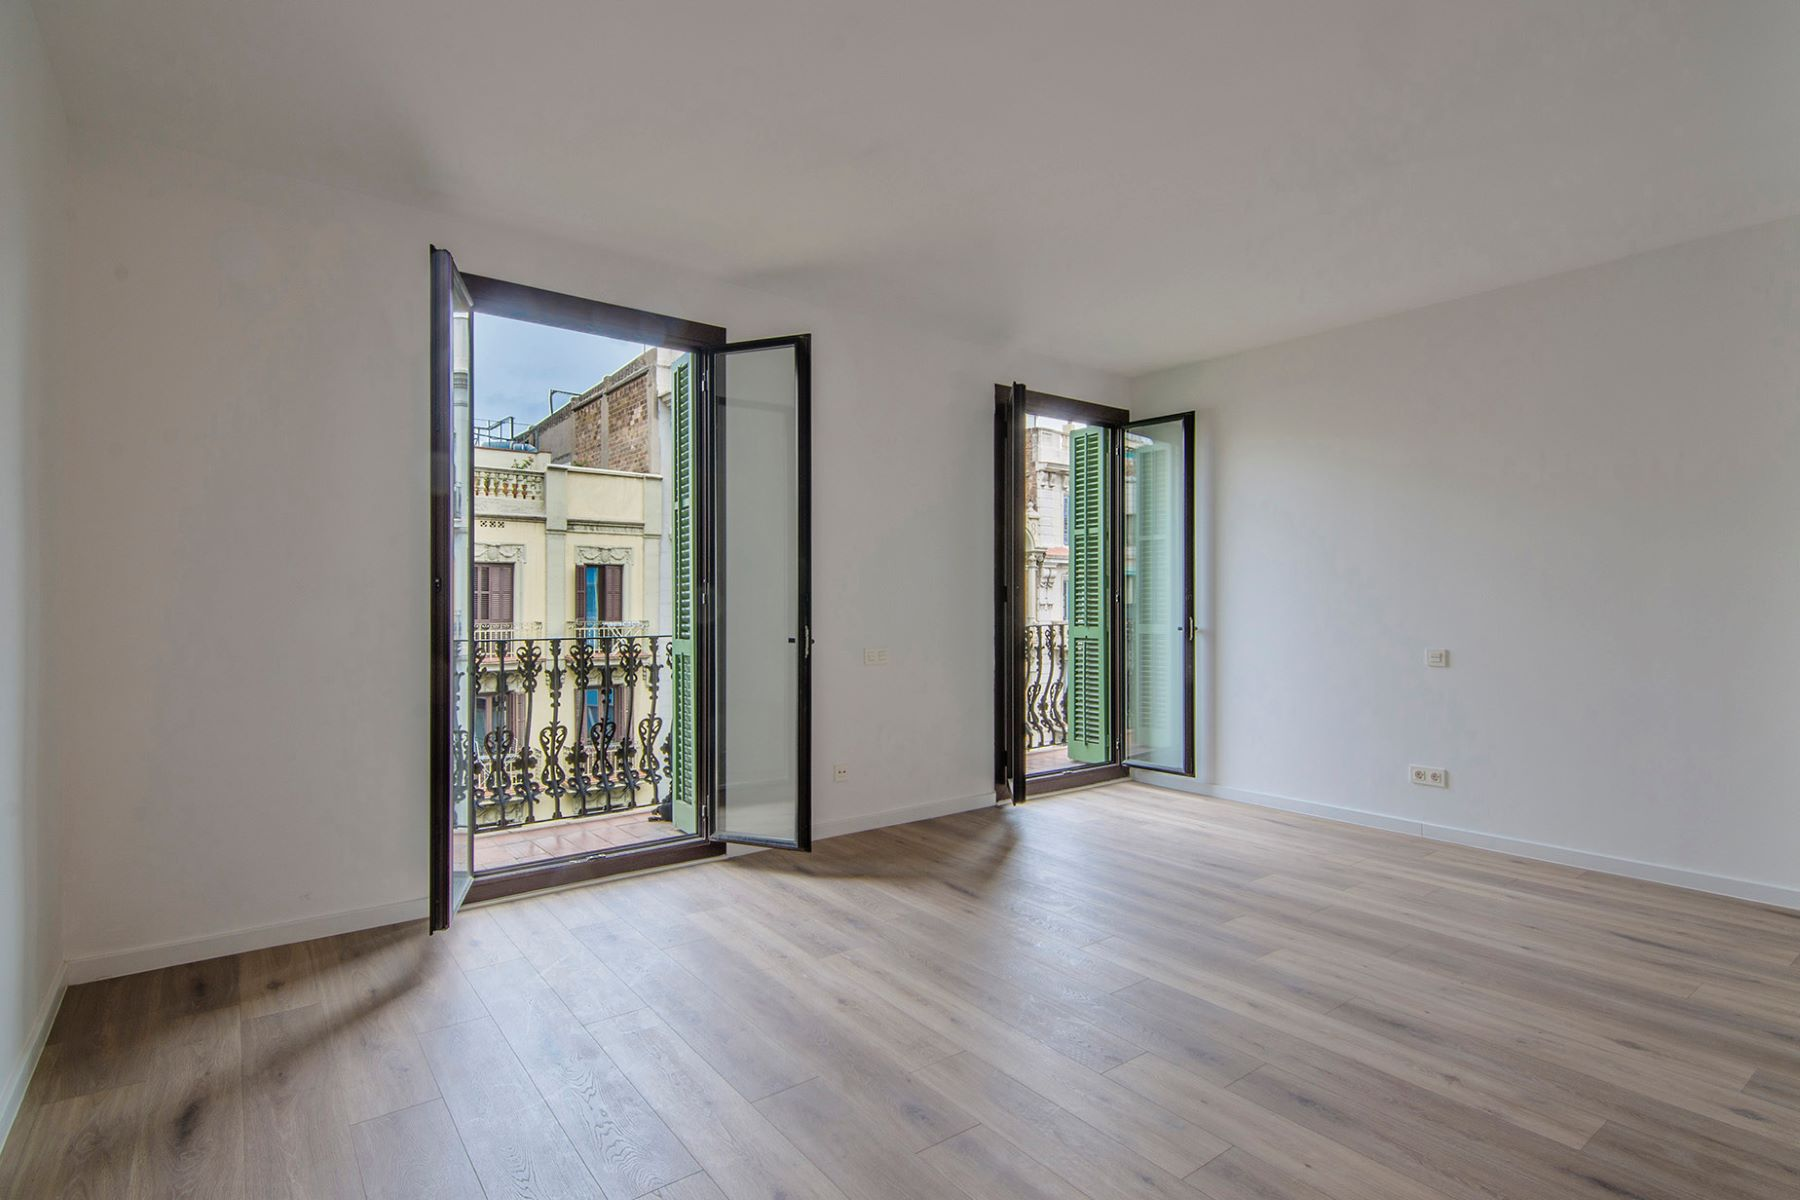 Appartement pour l Vente à Apartment to move to in the left Side of Eixample Barcelona City, Barcelona, 08007 Espagne